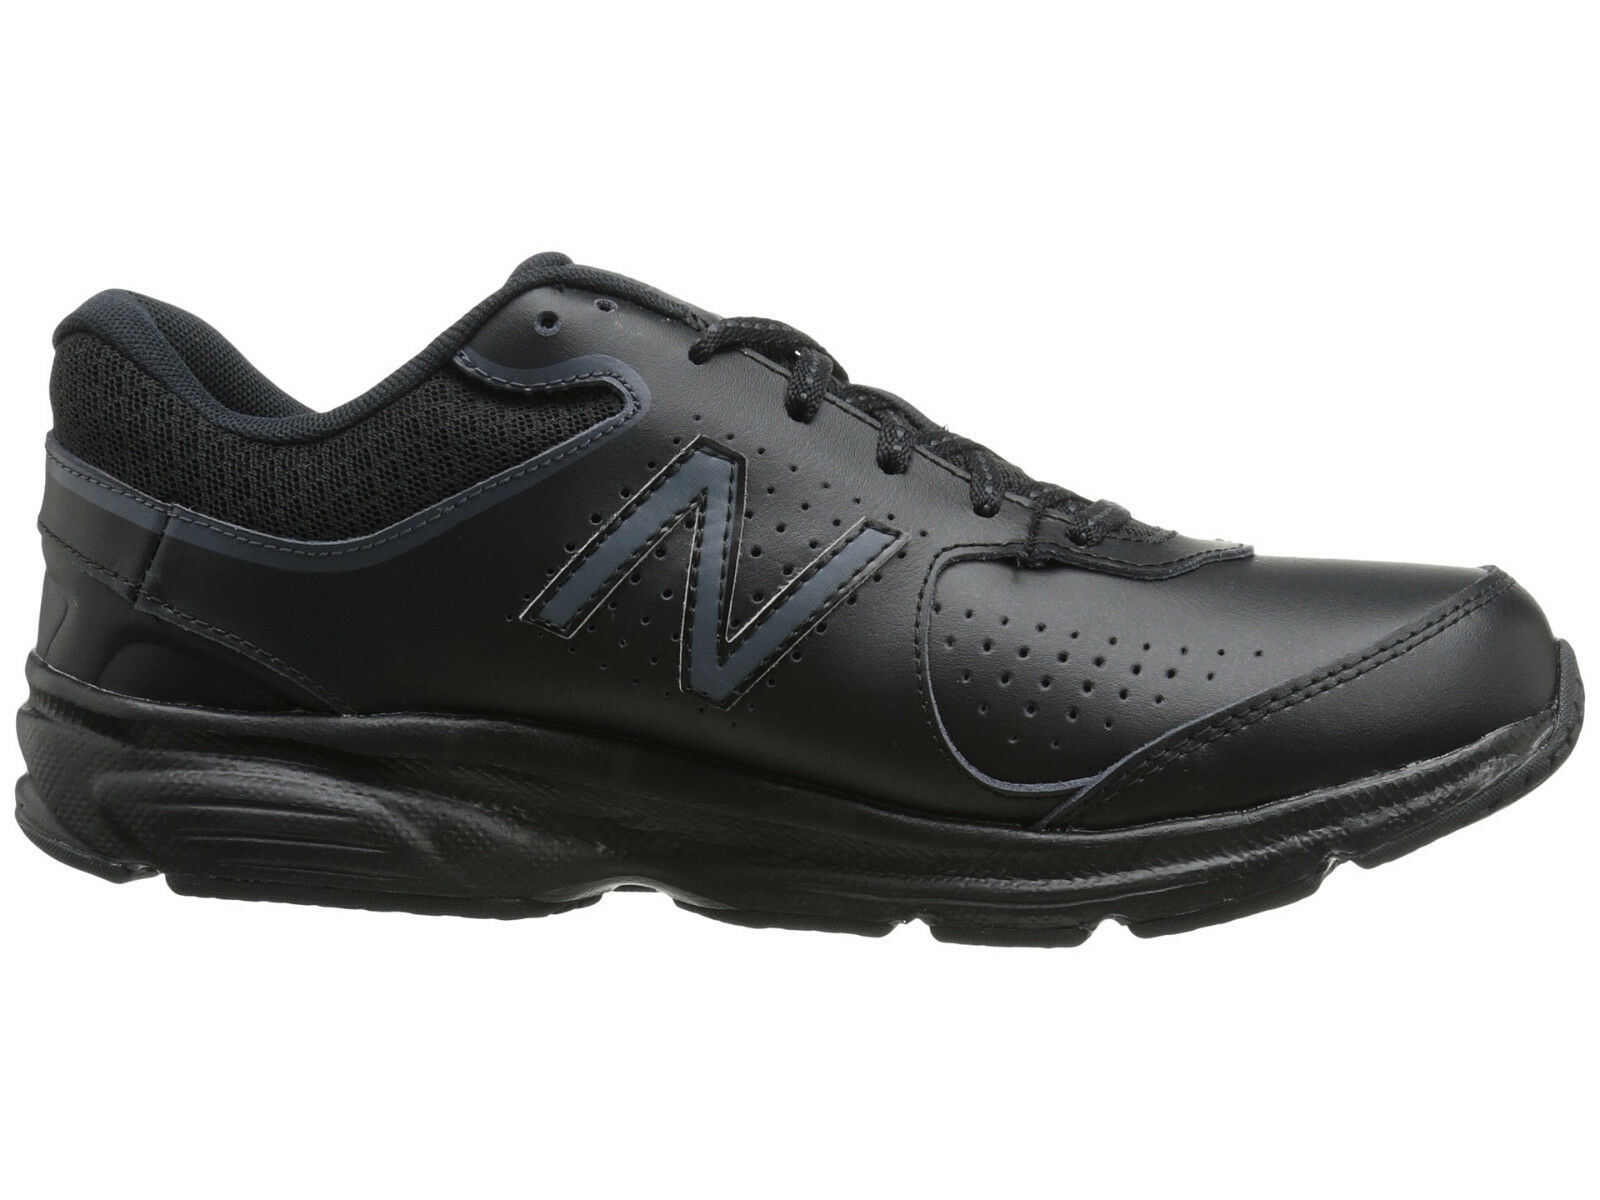 Women New Balance Balance Balance WW411BK2 Walking Medium Black 100% Authentic Brand New 404838